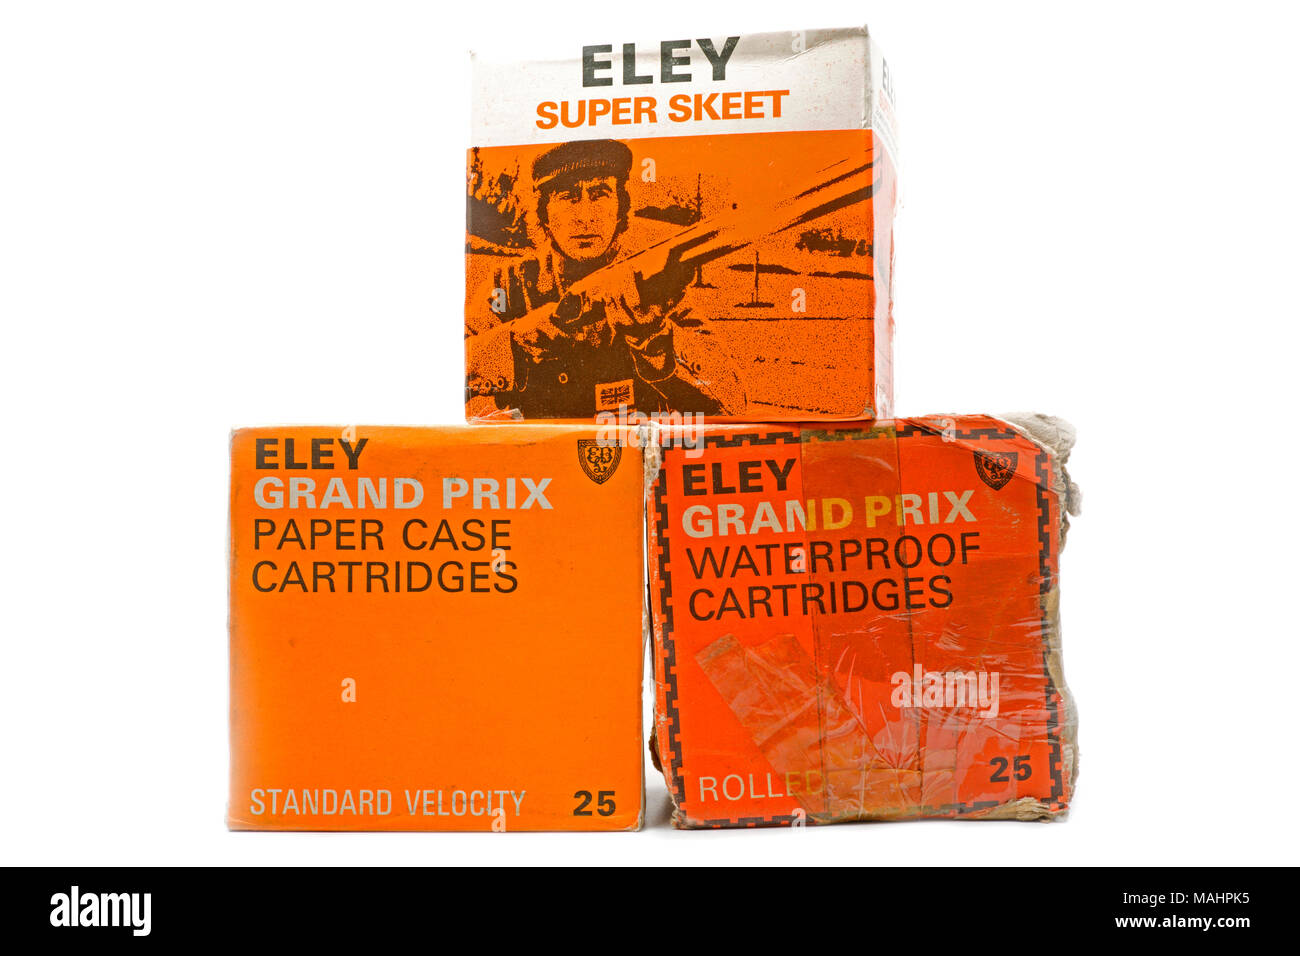 Three old Eley cartridge boxes, the top one featuring Sir Jackie Stewart OBE. UK - Stock Image